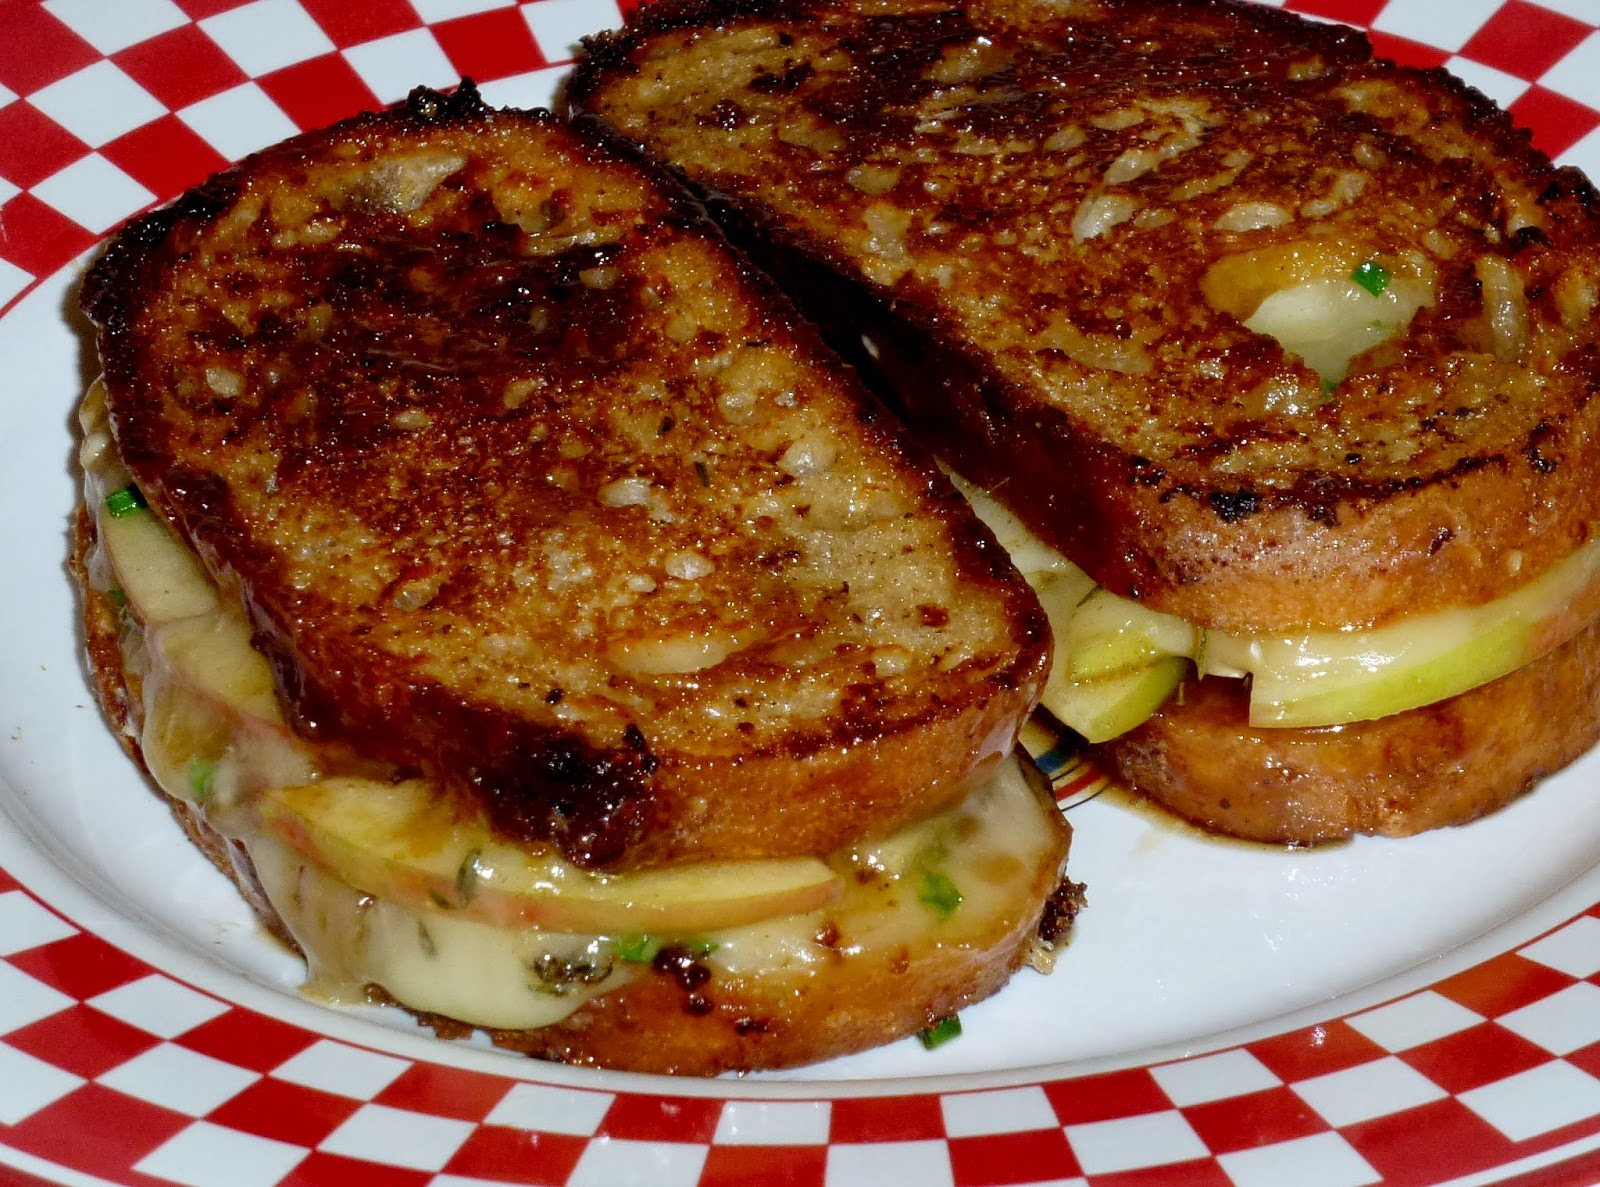 Savory Table: Camembert-Caramel Apple Grilled Sandwich